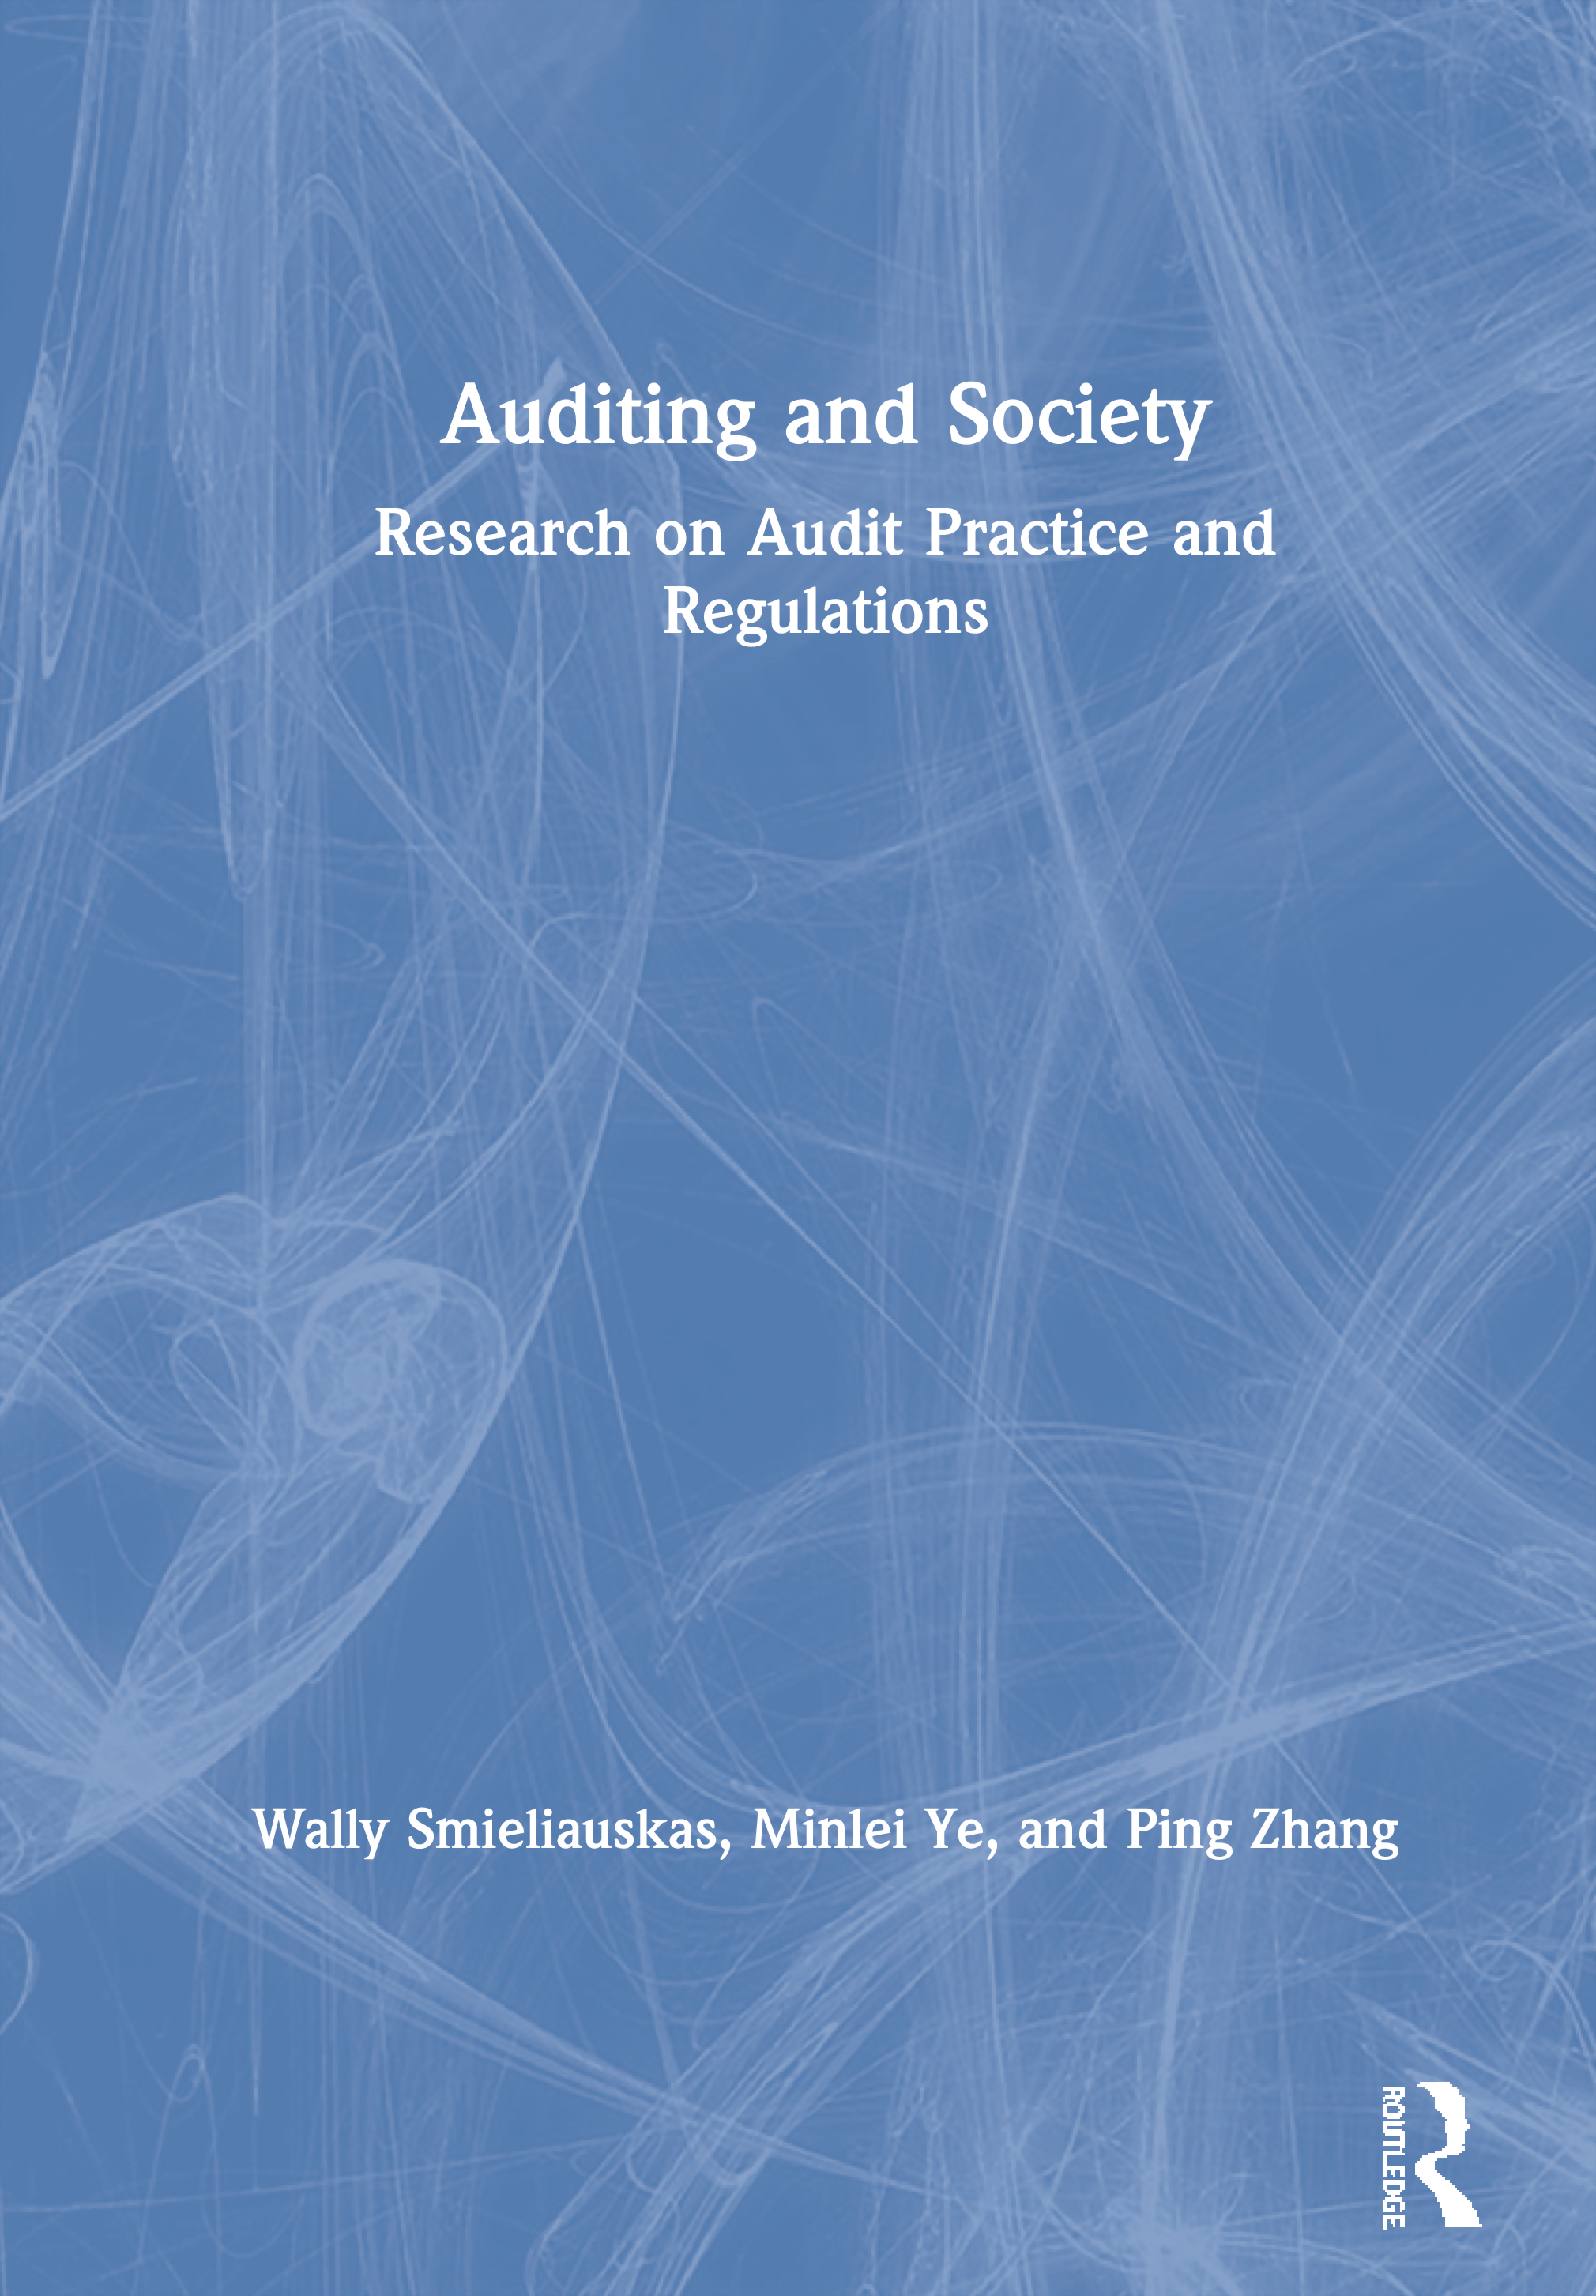 Auditing and Society: Research on Audit Practice and Regulations book cover